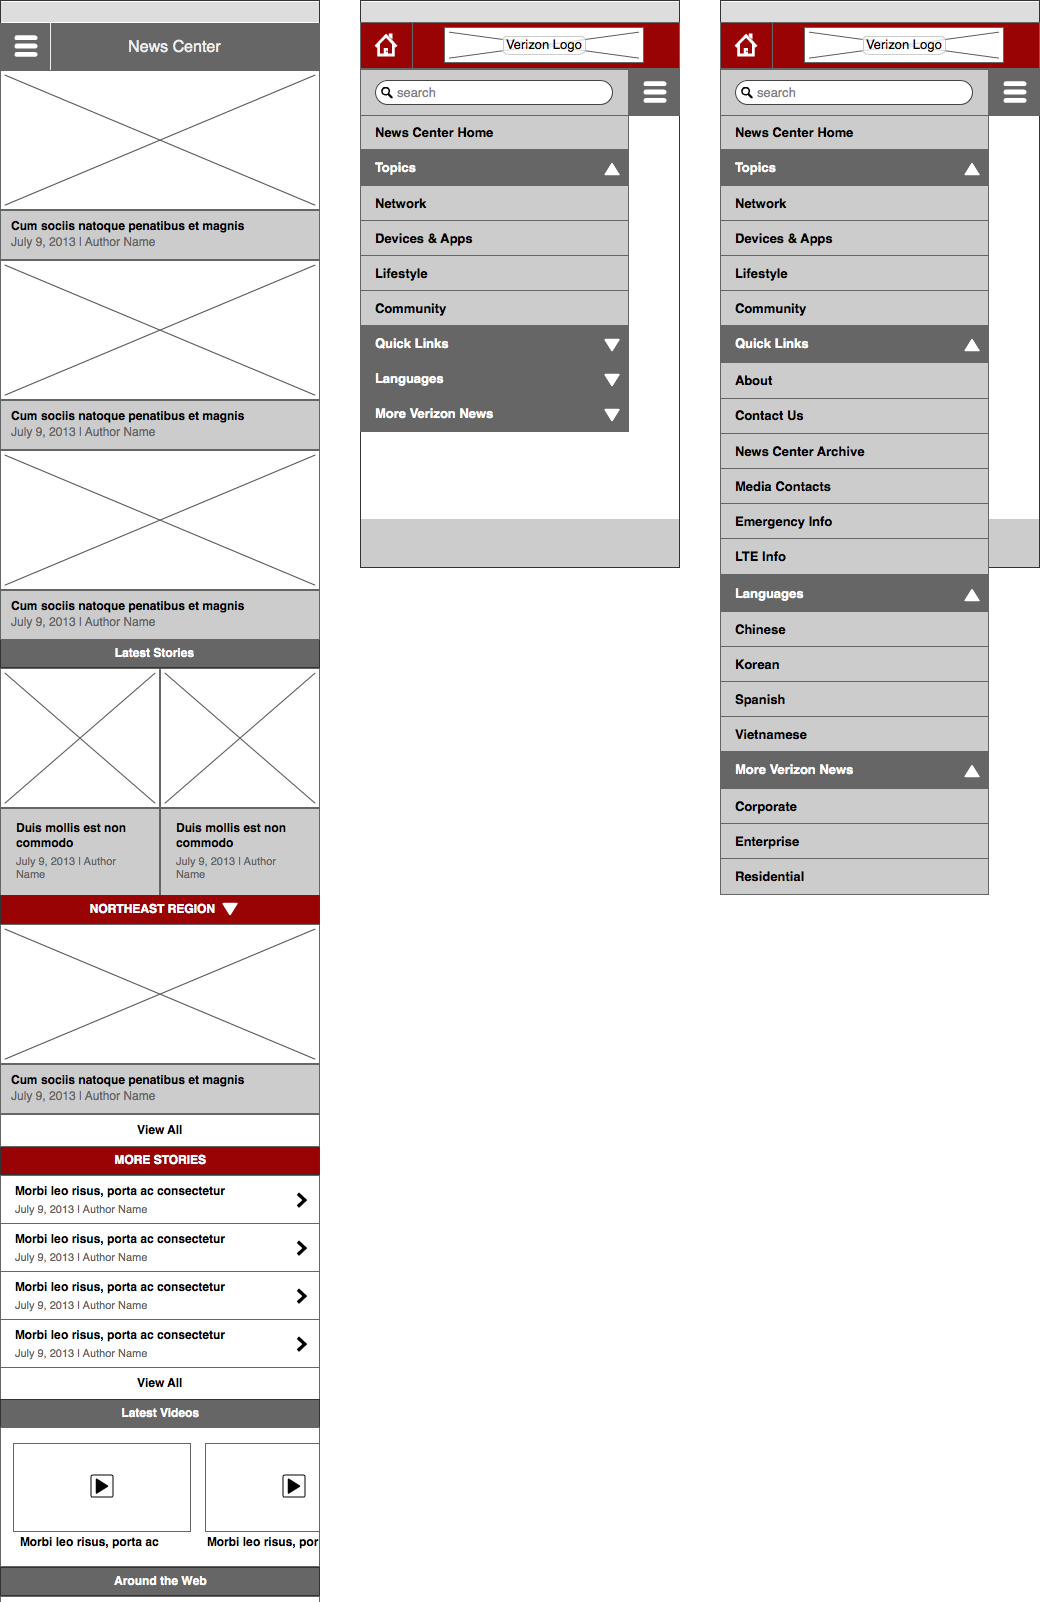 Newsroom Wireframe - Mobile Homepage